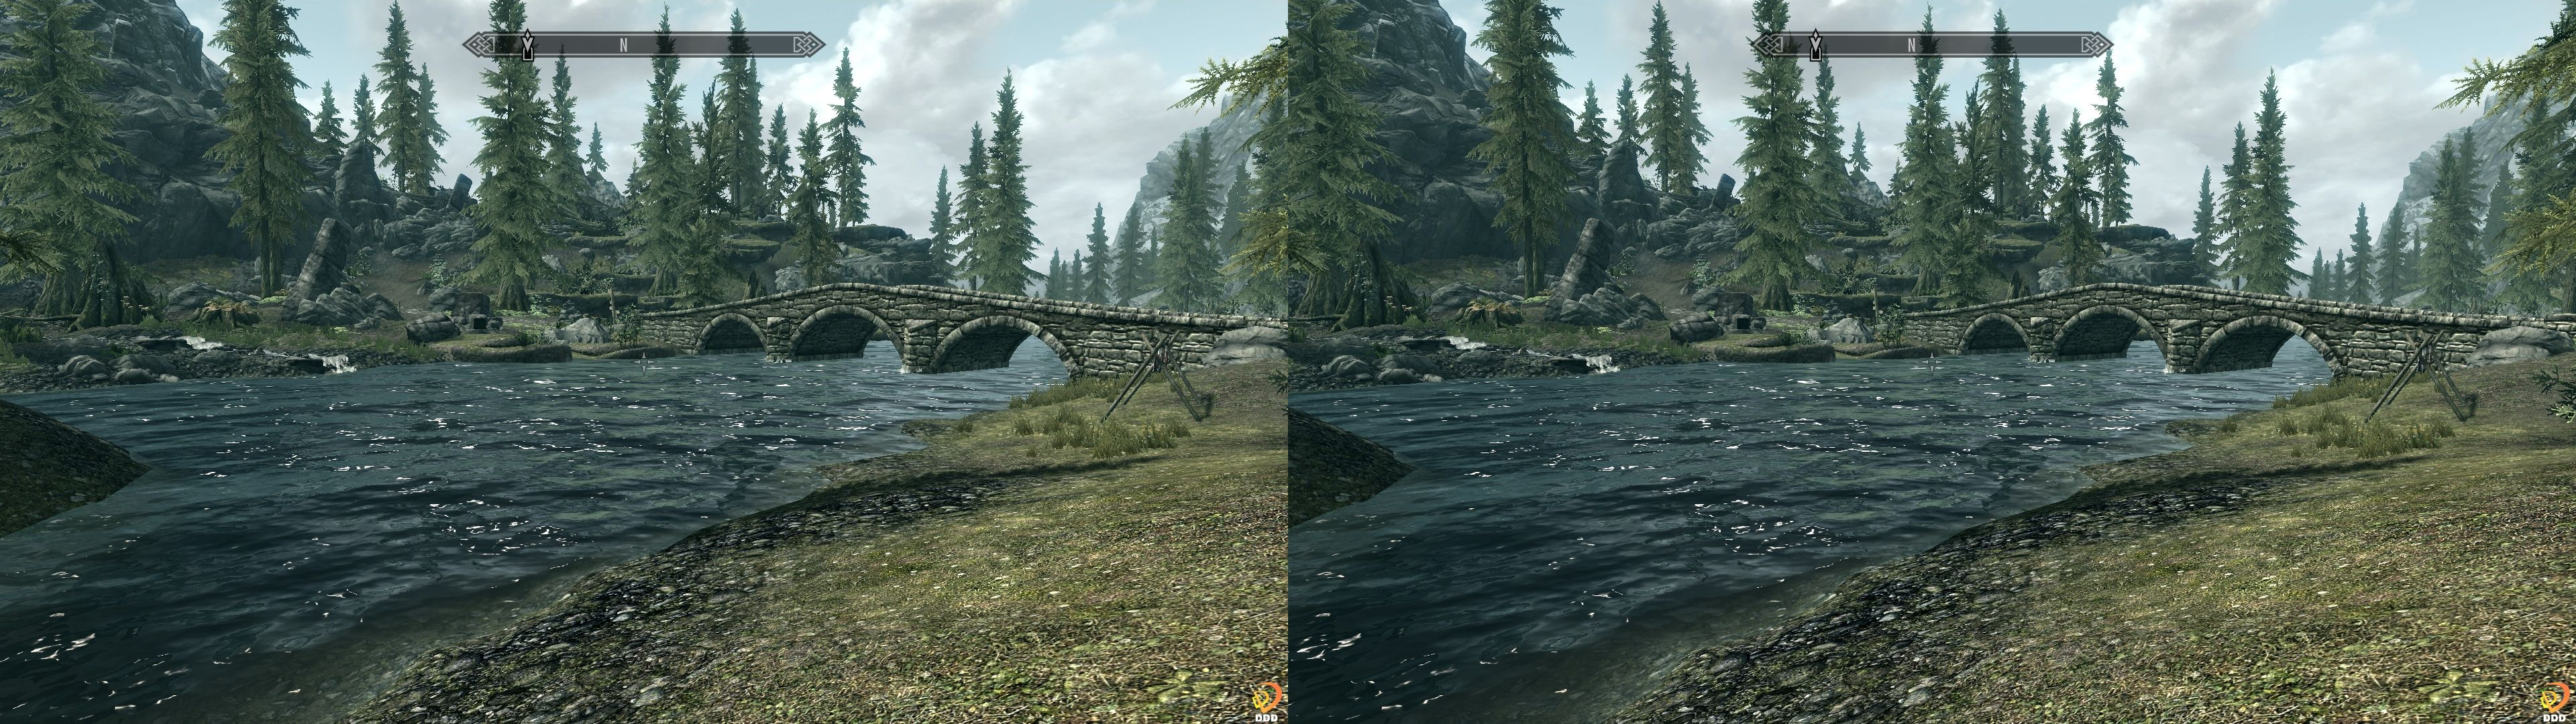 3D Image From Skyrim